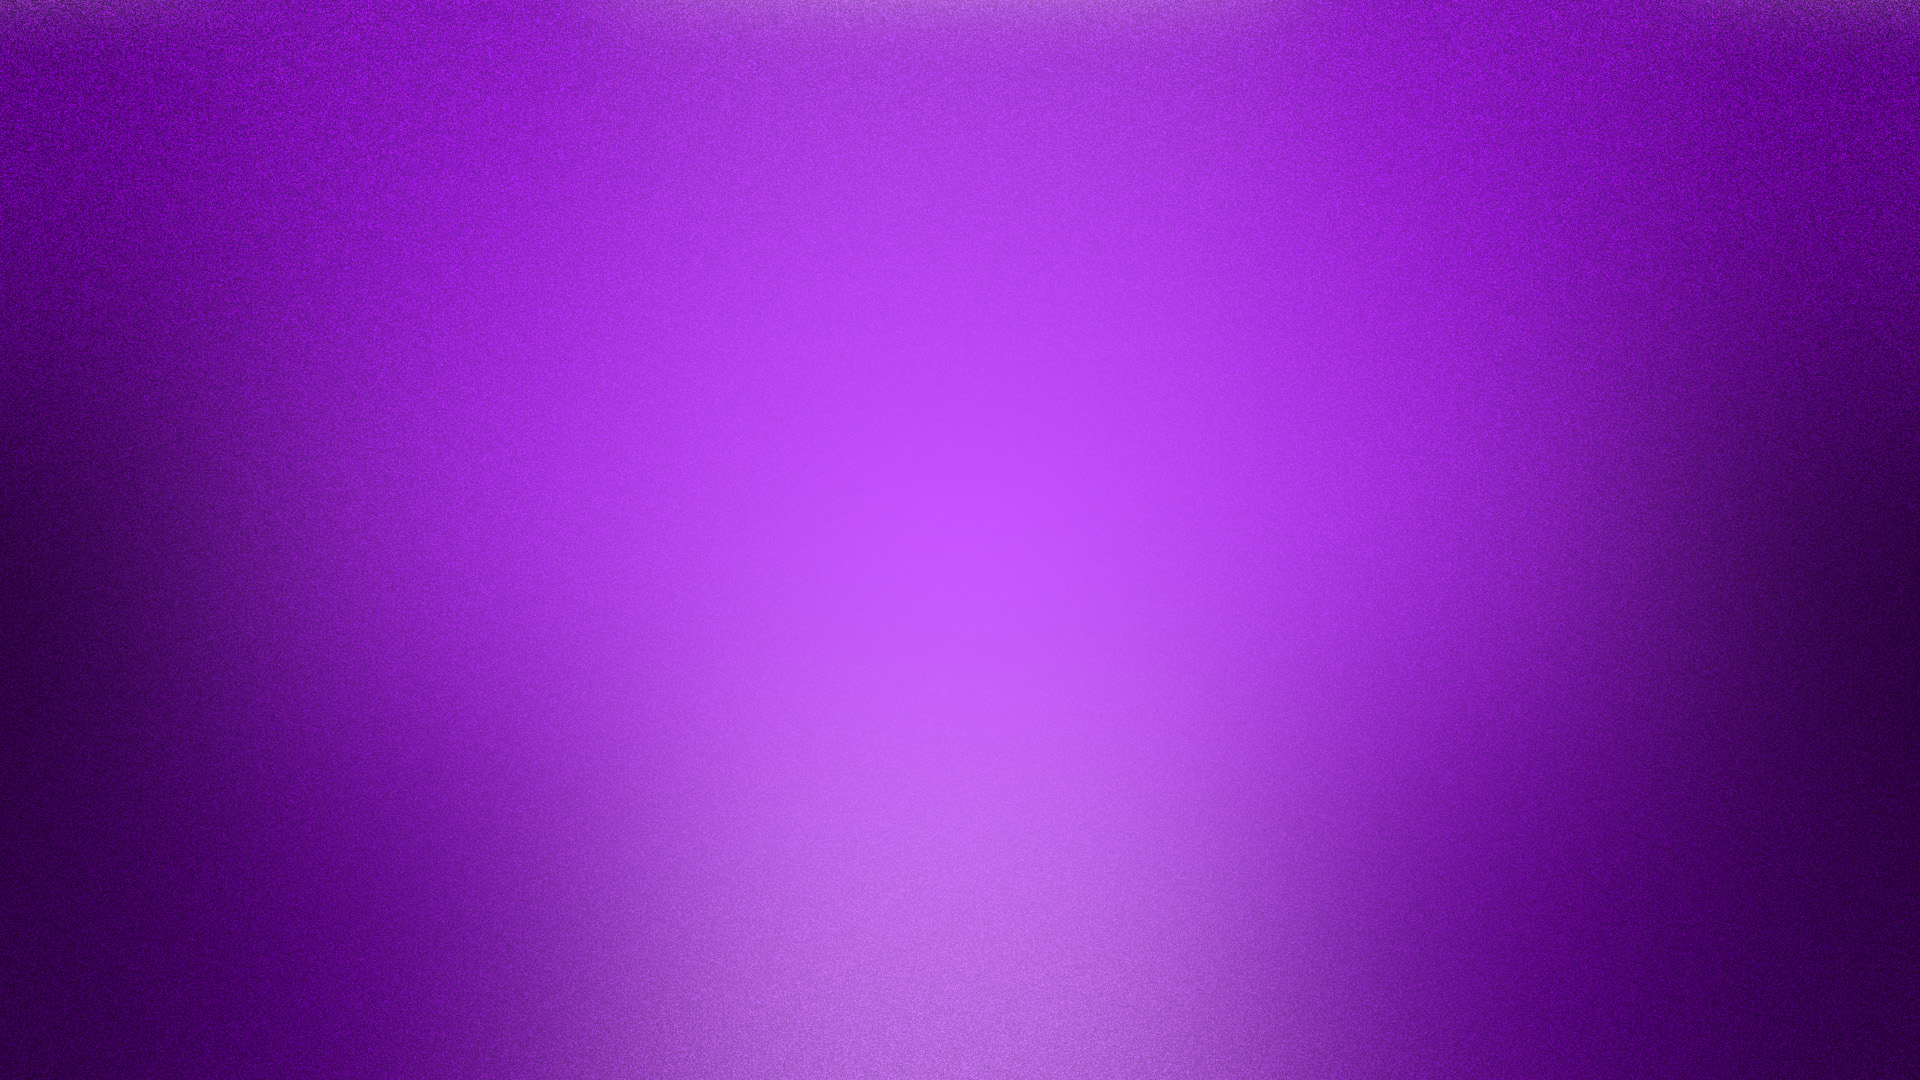 Pics Photos   Purple Background Hd Wallpapers 1920x1080